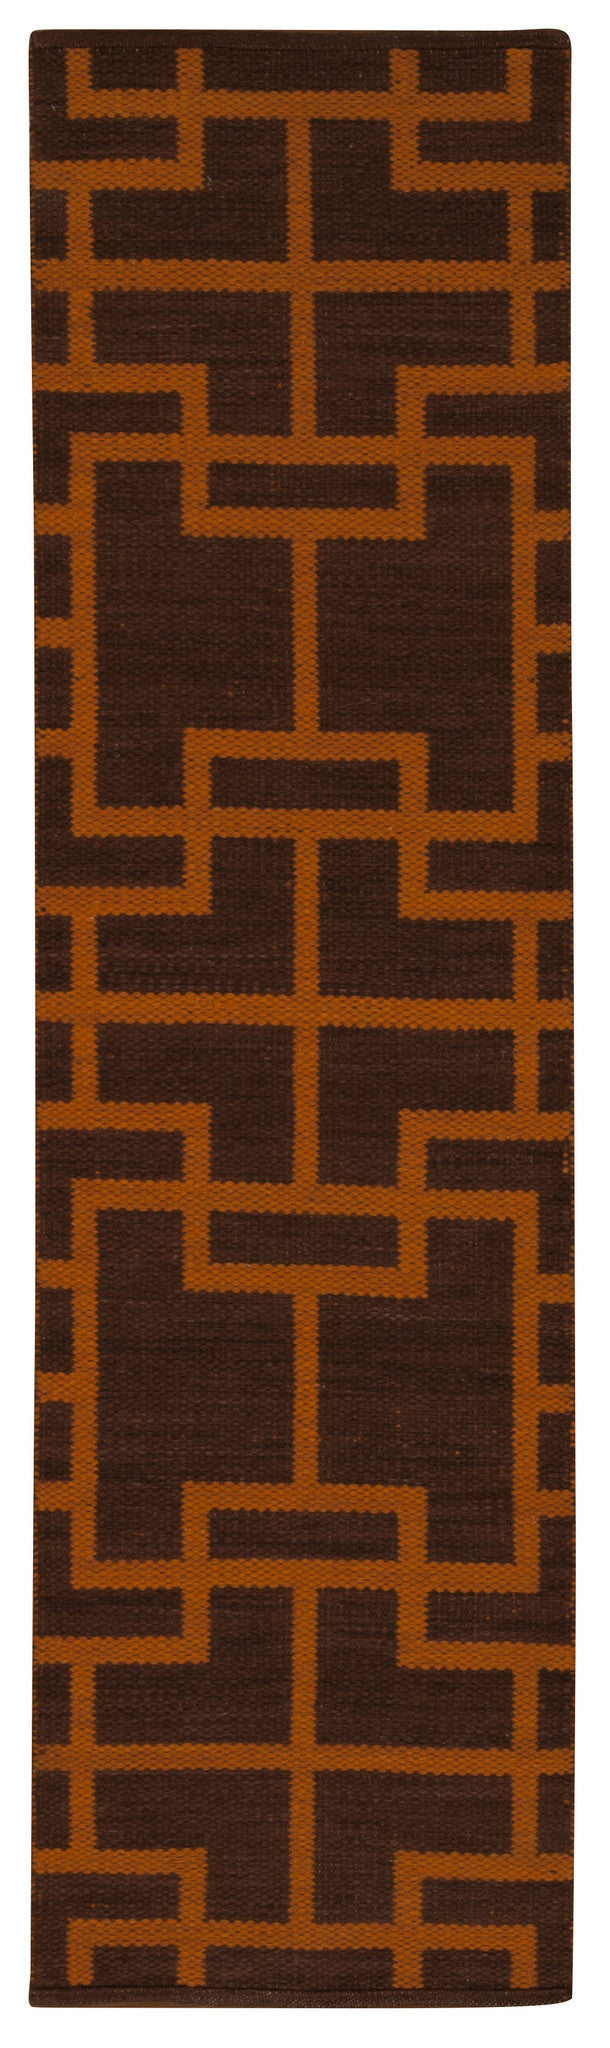 Barclay Butera Maze Paris Area Rug By Nourison MAZ02 PARIS (Runner) | BOGO USA